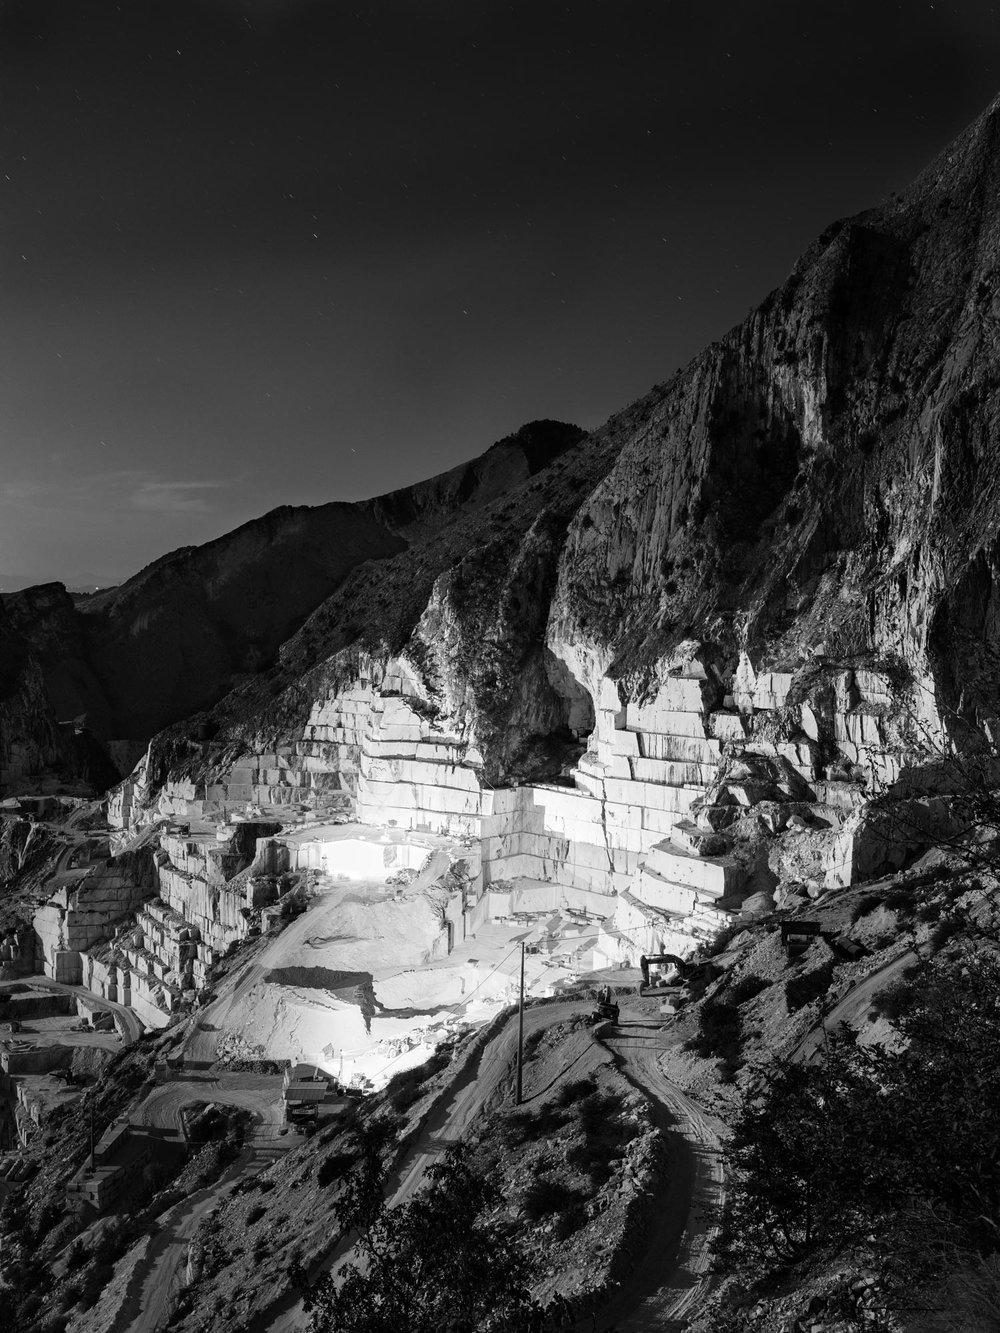 "One of the marble quarries in the Fantiscritti basin, behind the city of Carrara. The basins are inside the protected area of Alpi Apuane, which are defined ""Alps"" due to their morphology and are a mountain system that goes from the north-west of Tuscany and spreads over a surface of 400 square km. The mountains are formed by a dorsal which runs parallel to the Tirrenian coast and raises up to 2000 meters. In Carrara 18 torrents separate about 200 marble quarries. The landscape is huge and surreal.